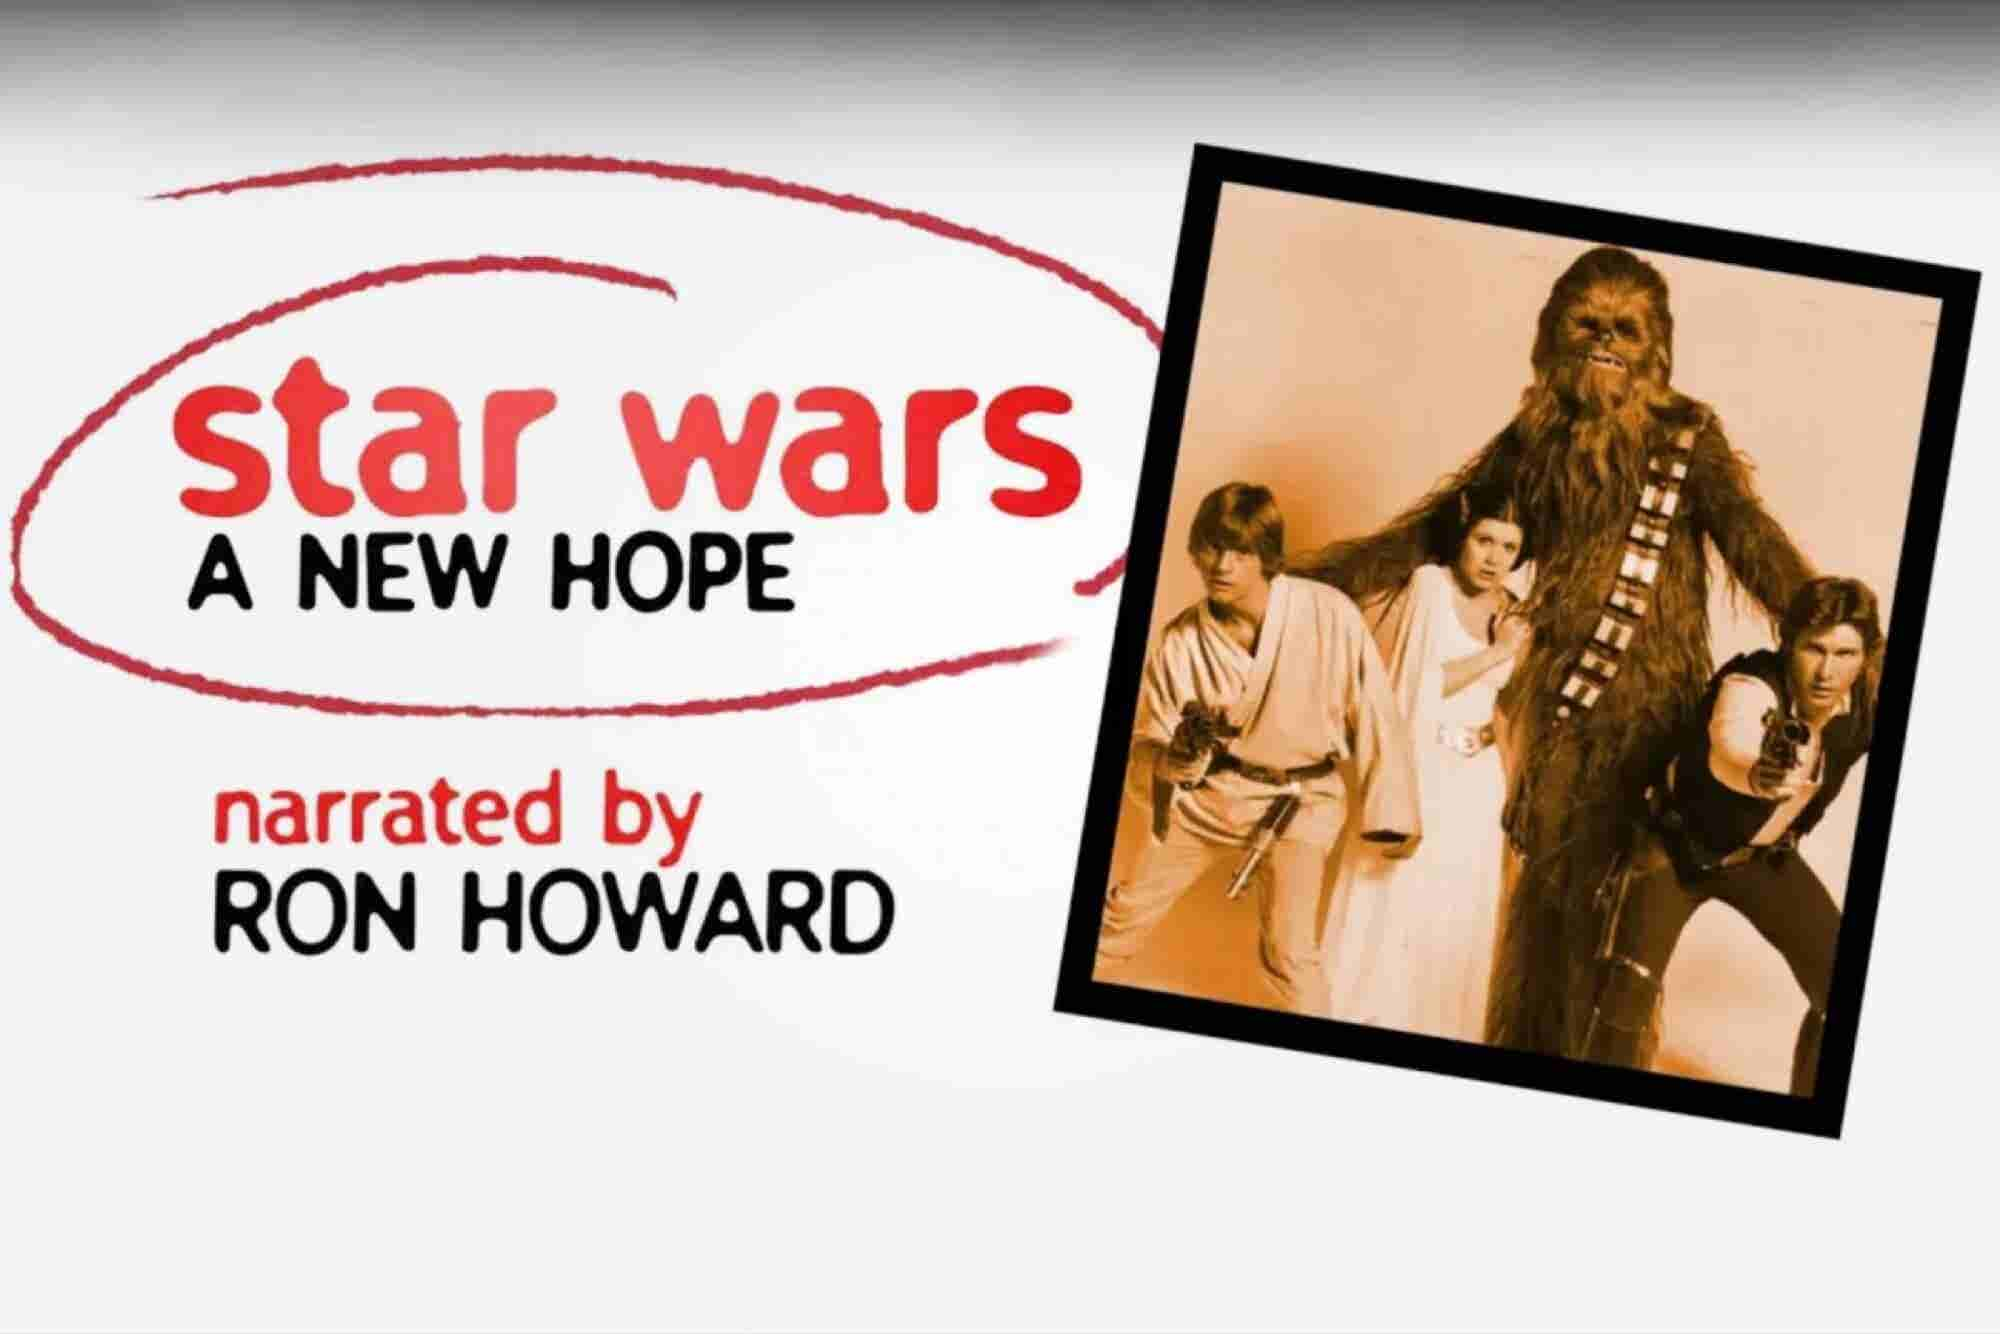 Ron Howard Creates a Great Bit of Marketing by Combining 'Stars Wars' and 'Arrested Development'